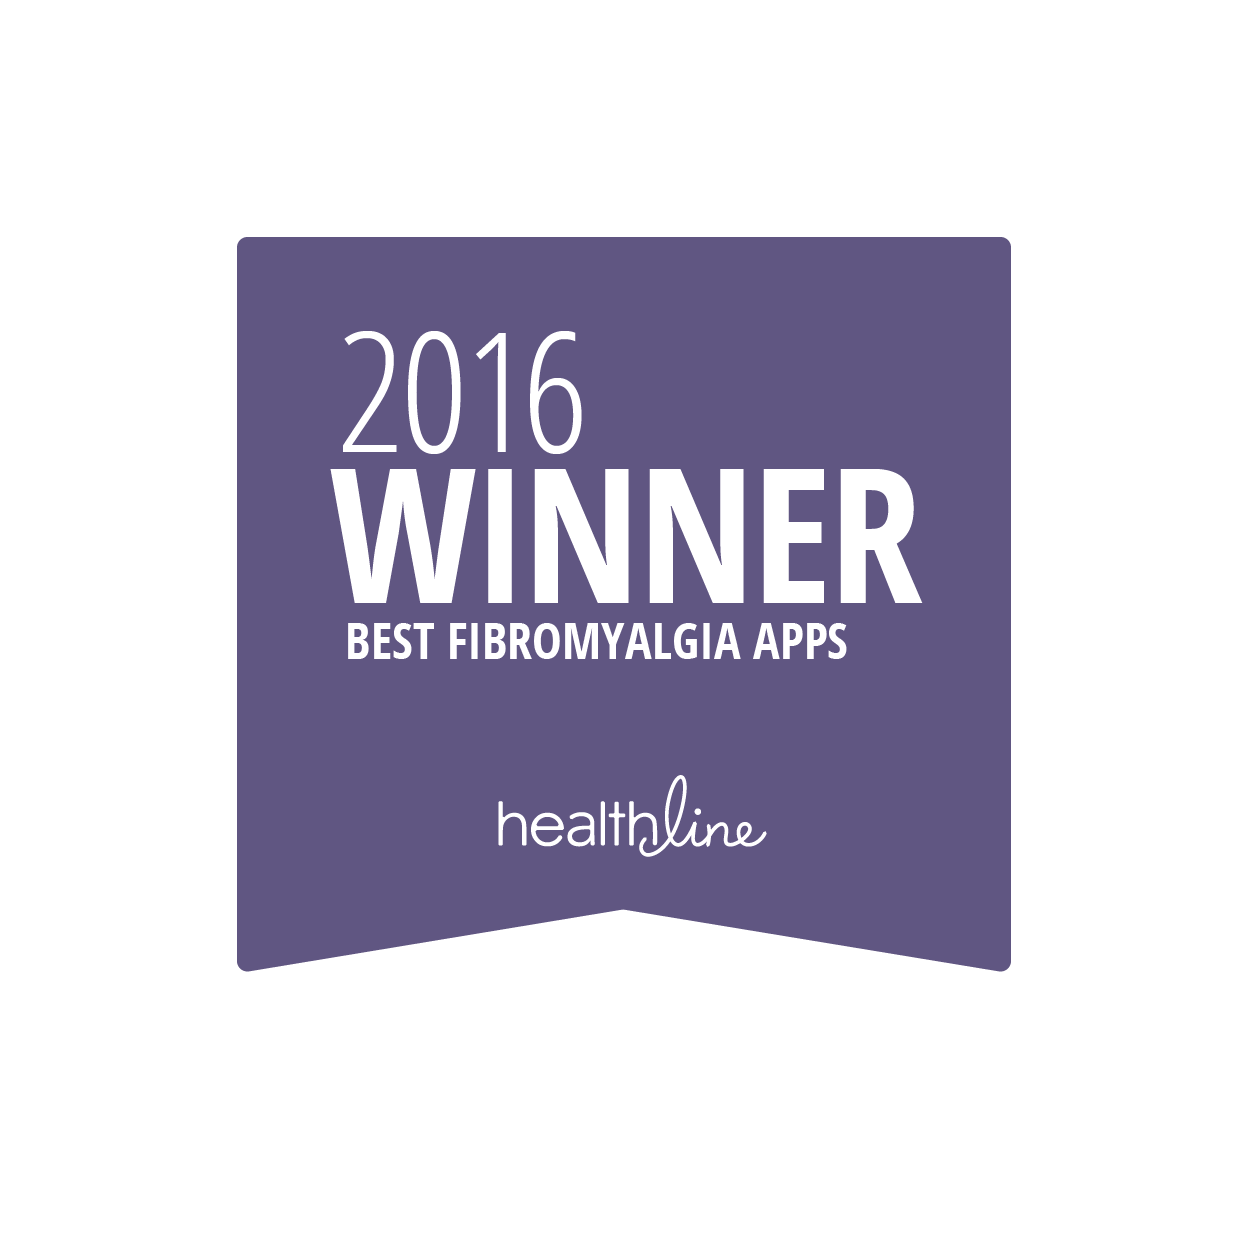 The Best Fibromyalgia Apps of 2016